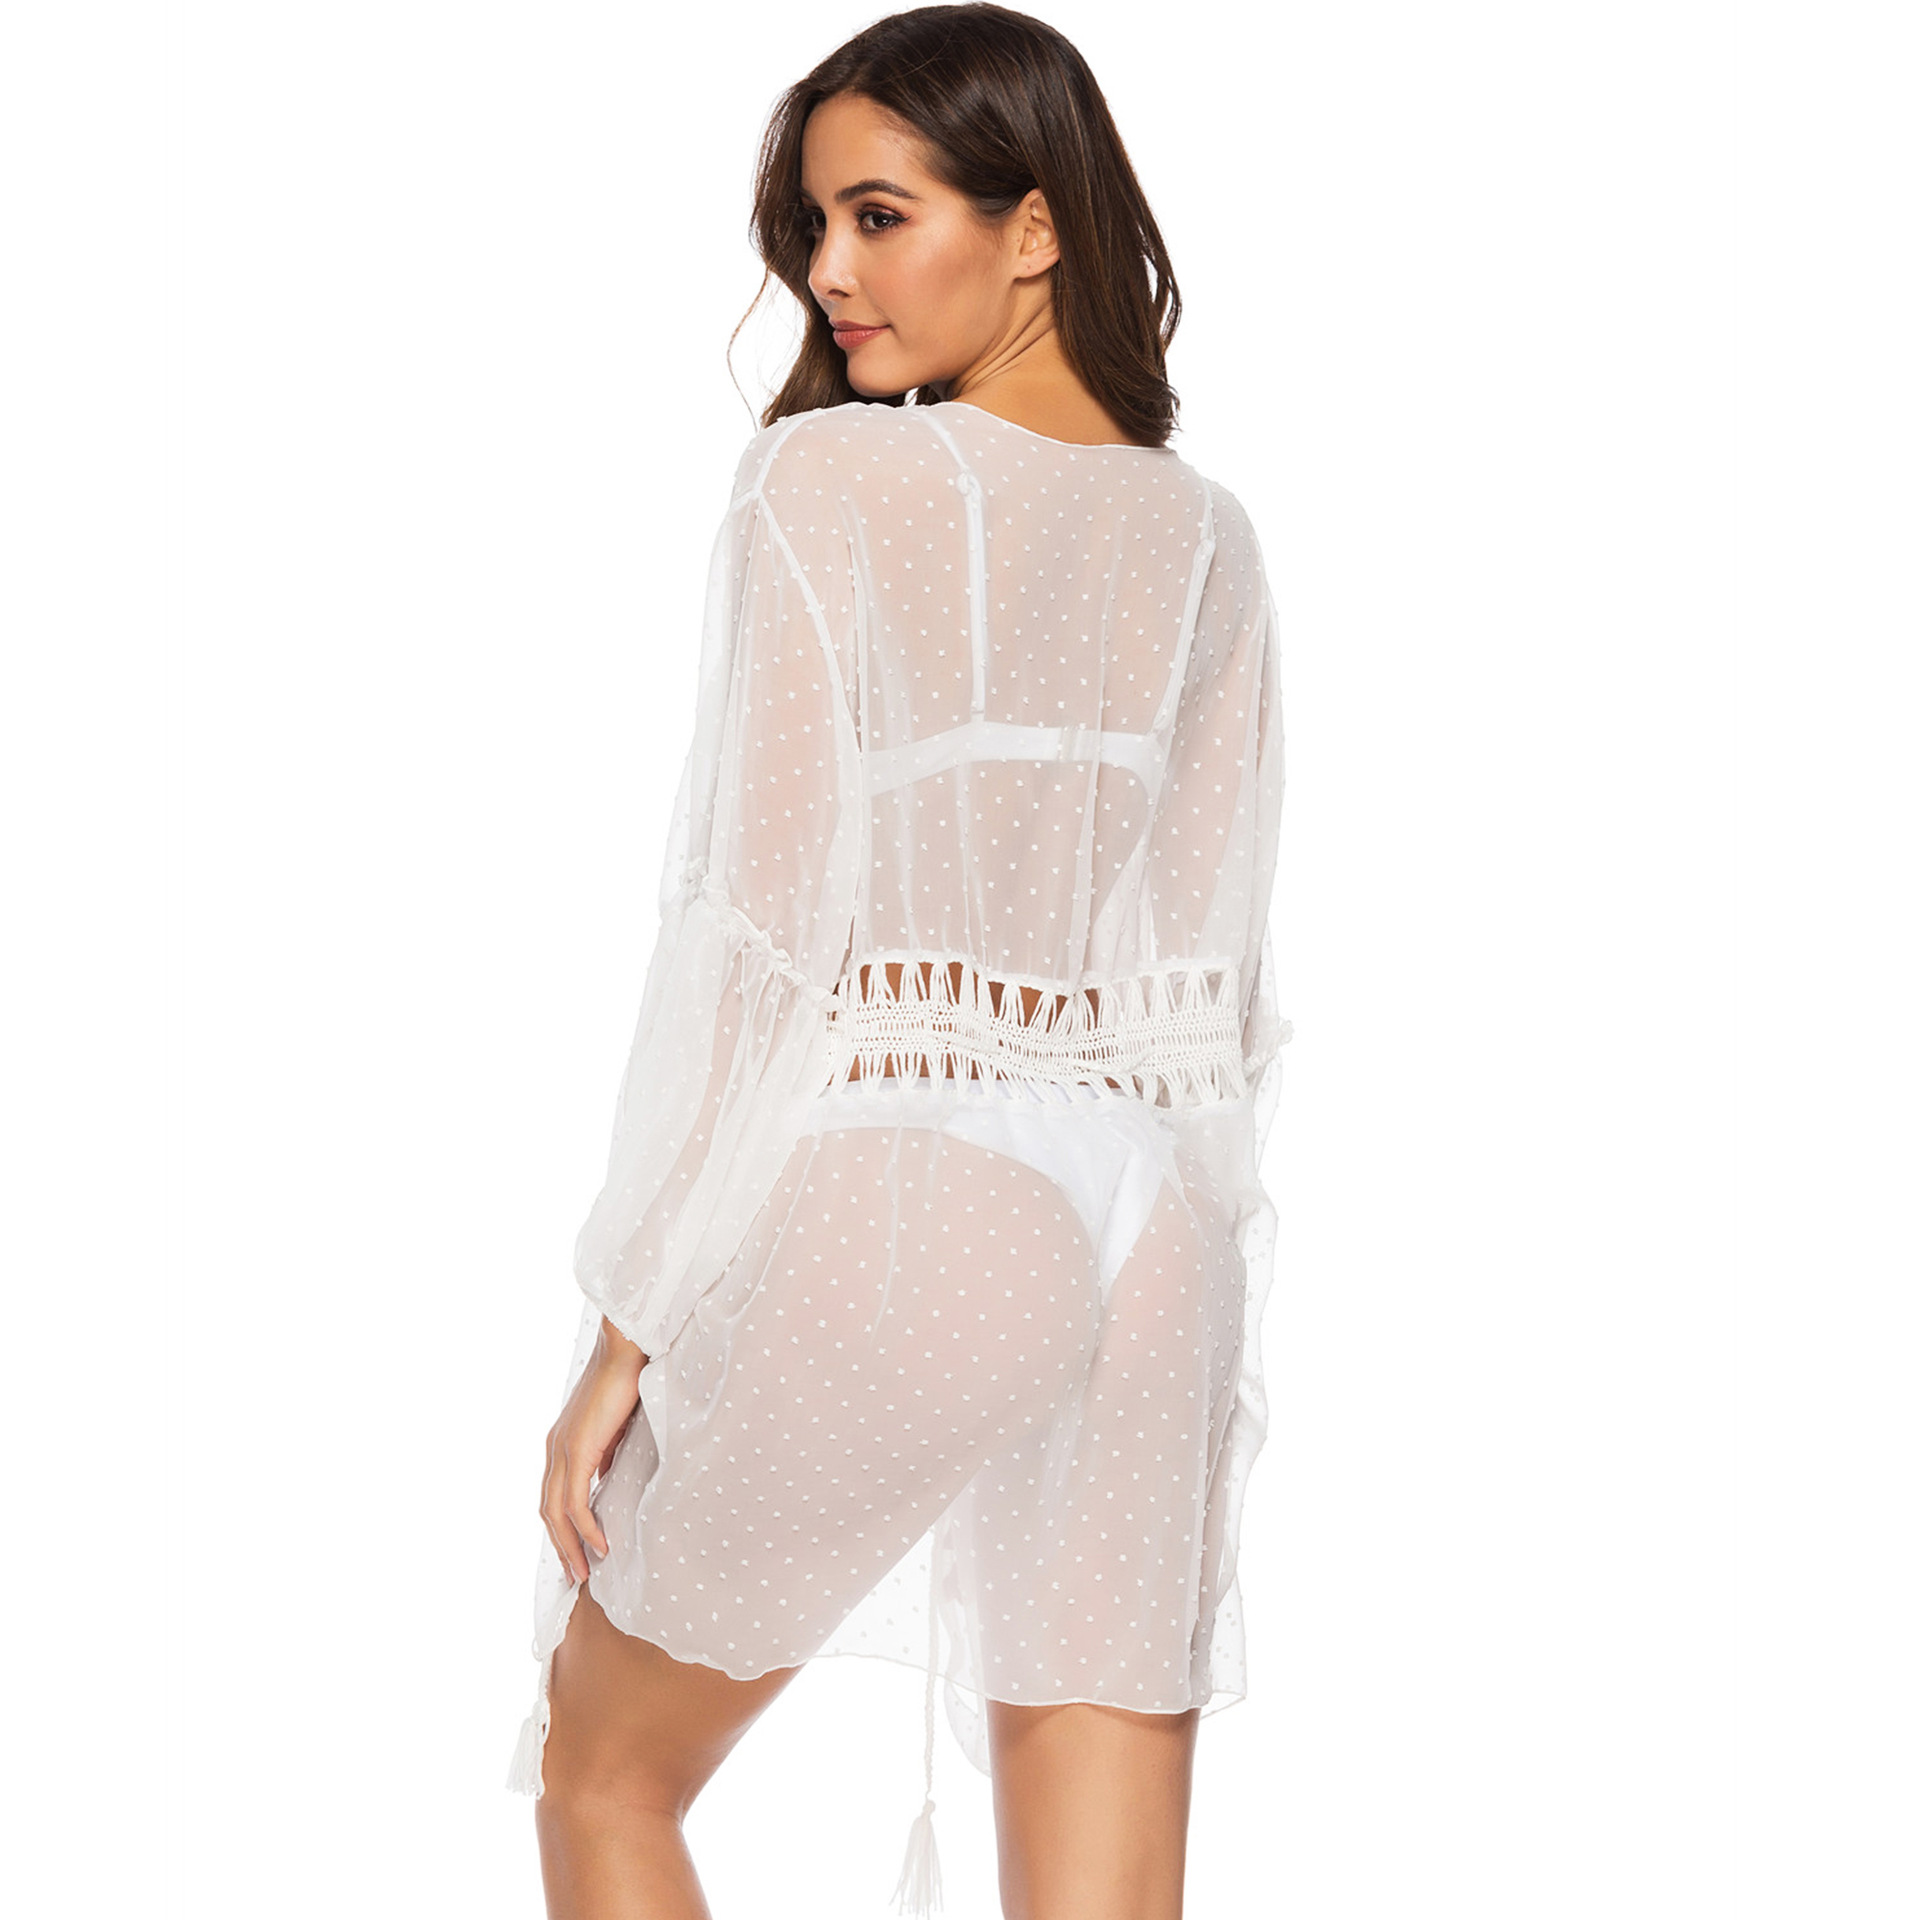 beach cover ups hand crochet cardigan shirts bikini cover ups harajuku blouse women lace blouse transparent crop top women in Blouses amp Shirts from Women 39 s Clothing